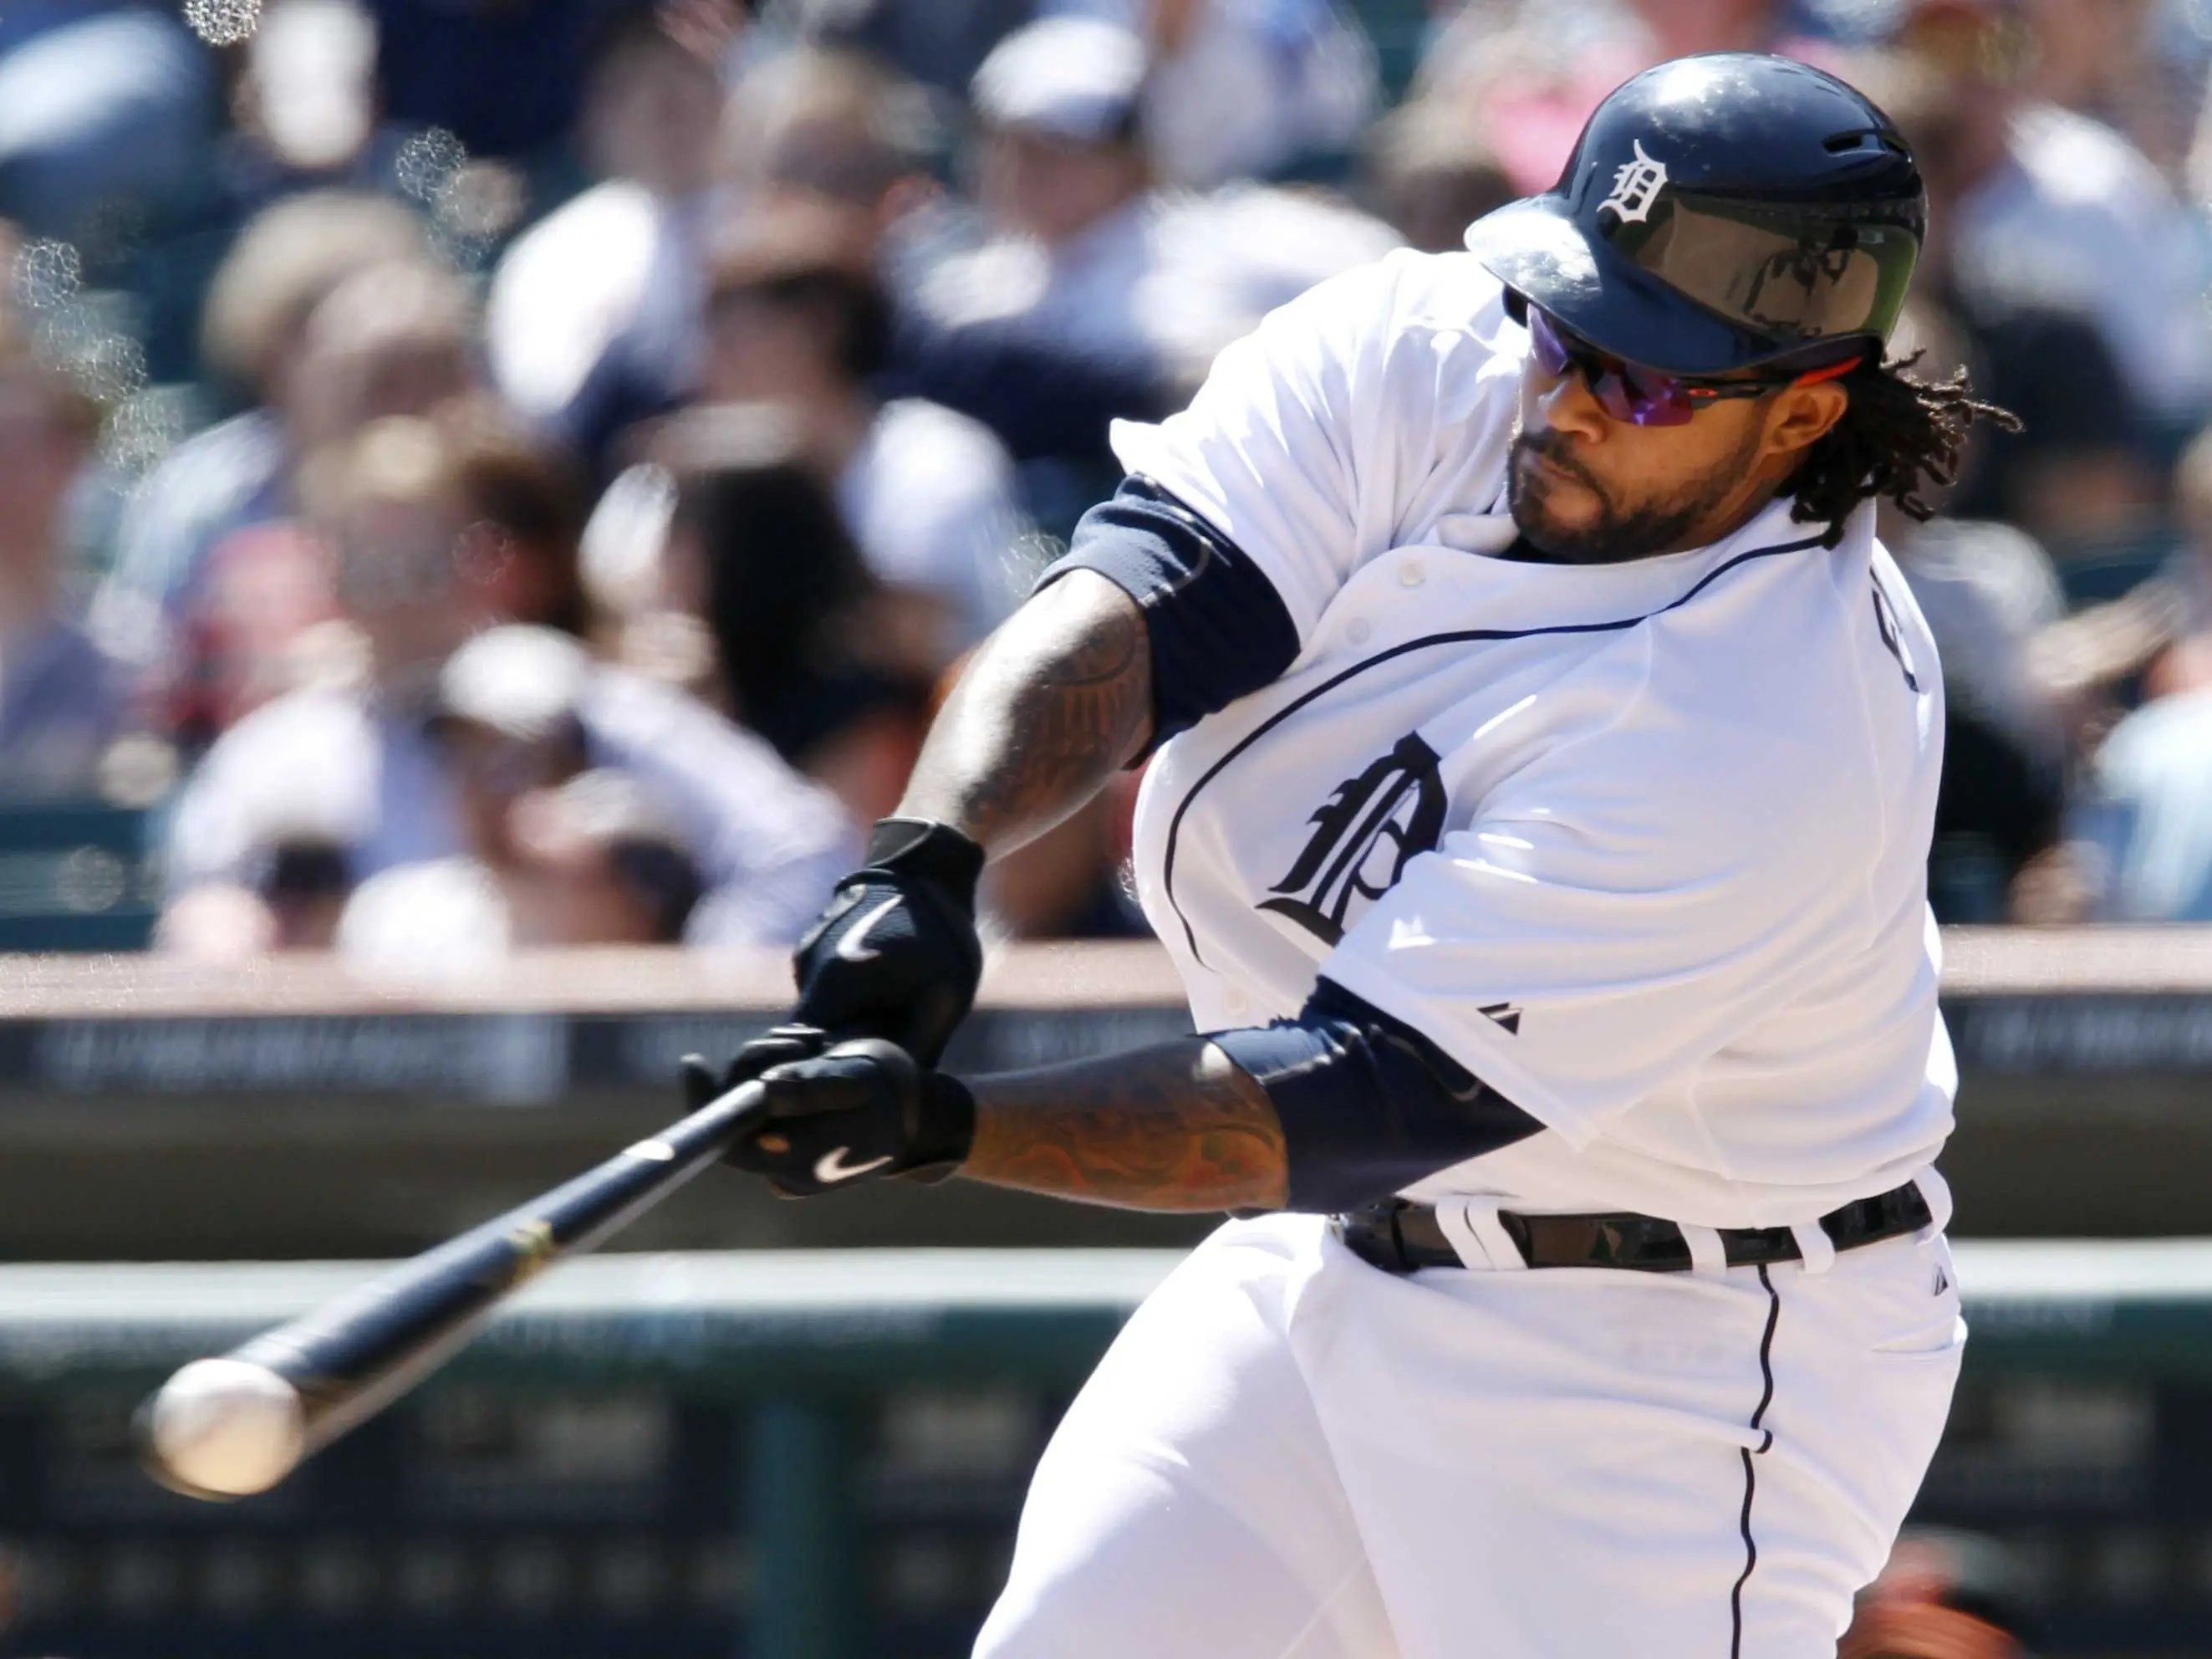 #18 Prince Fielder, Detroit Tigers